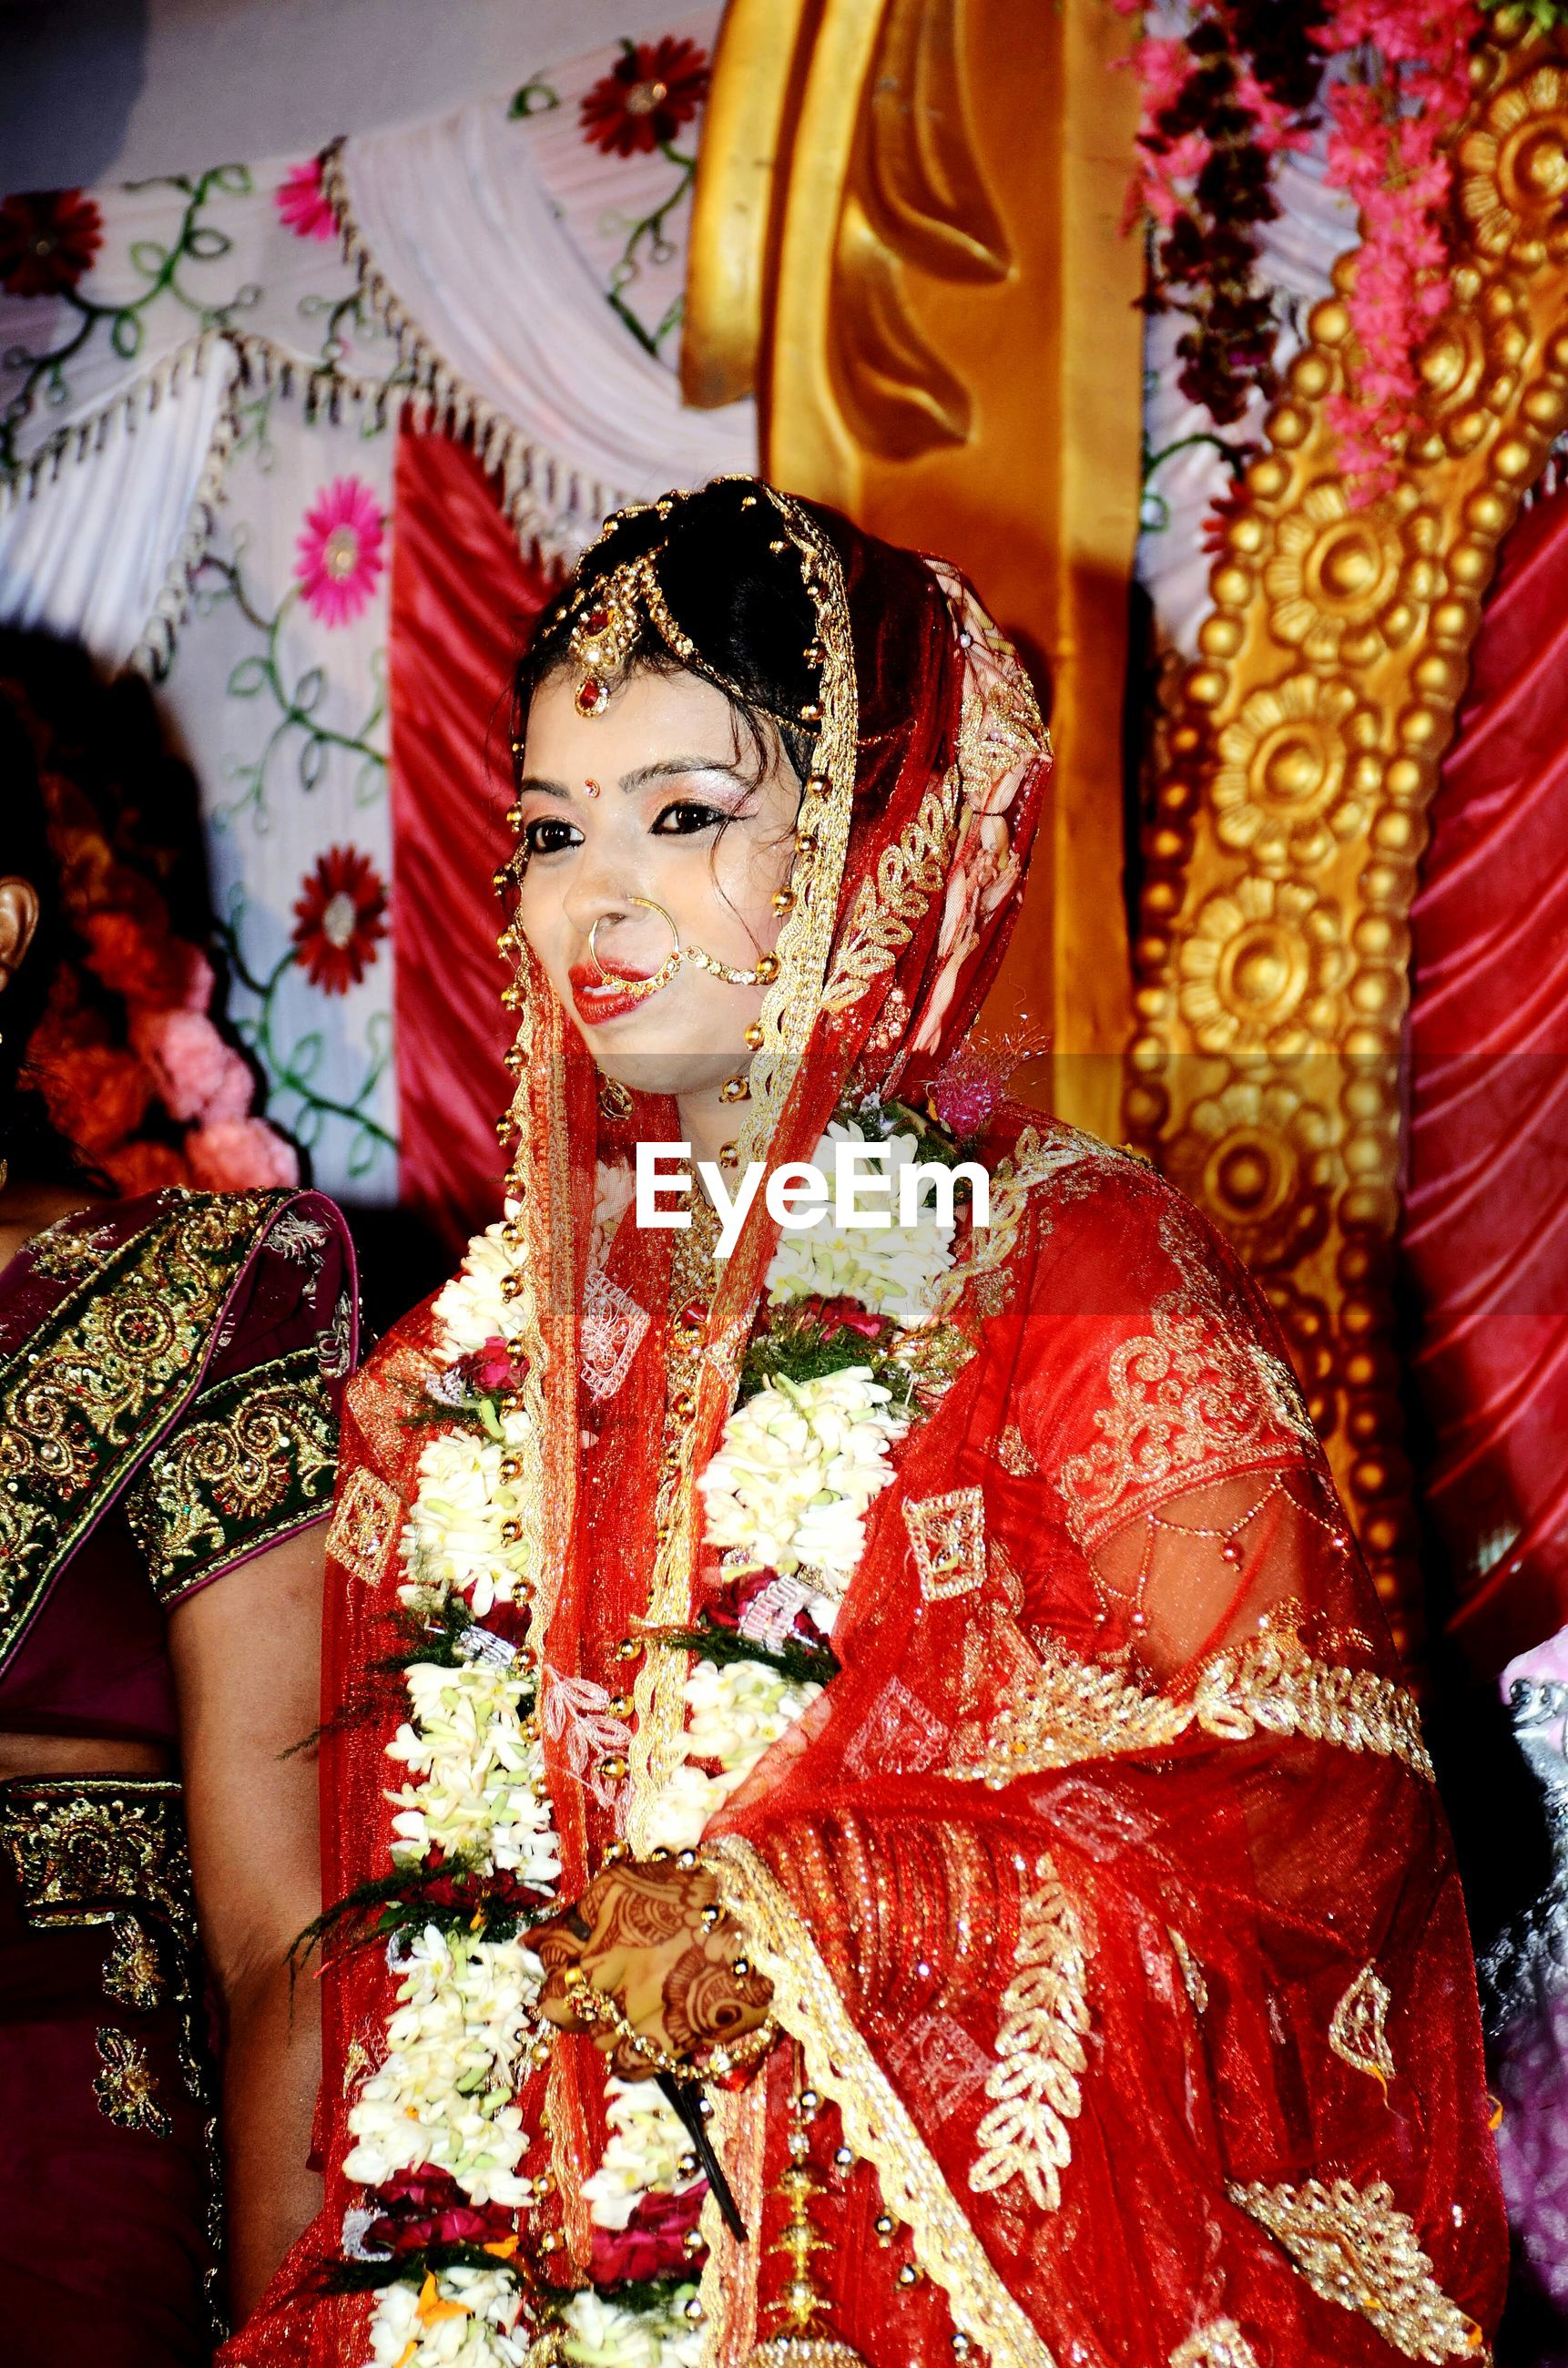 Bride in red sari standing against decoration during wedding ceremony